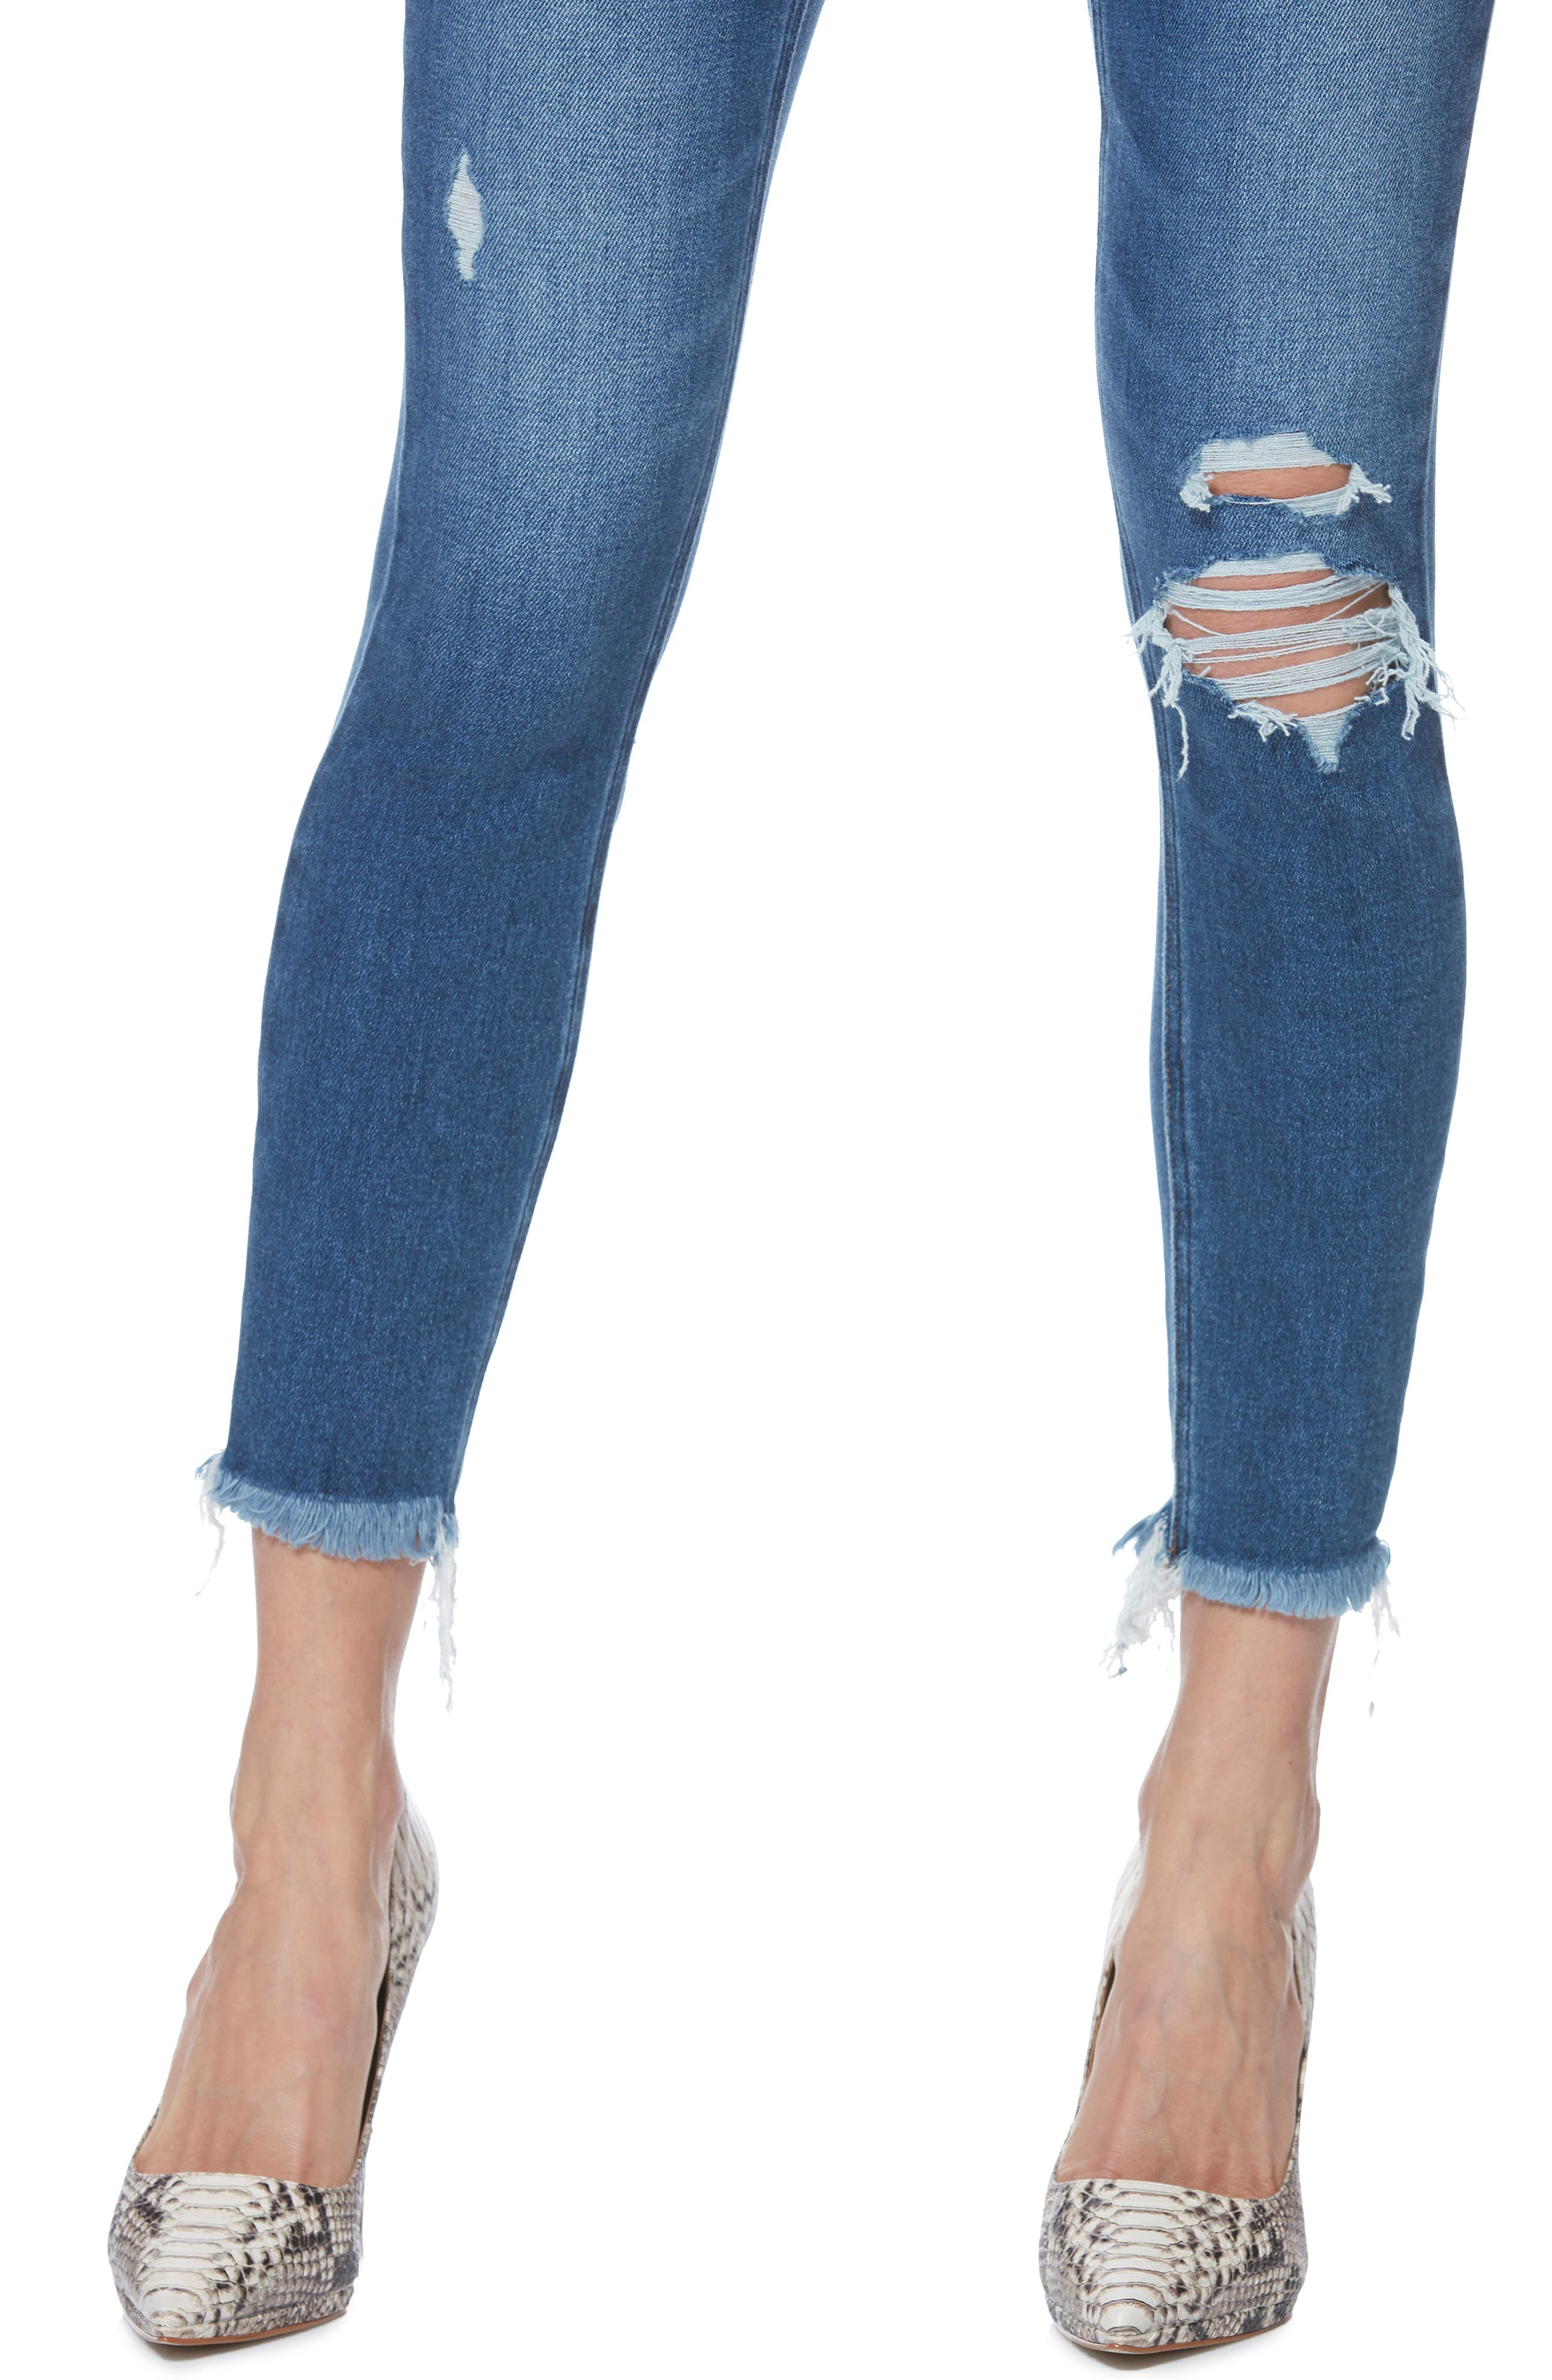 PAIGE, Margot High Waist Crop Skinny Jeans, Alternate thumbnail 4, color, ALESSIO DESTRUCTED